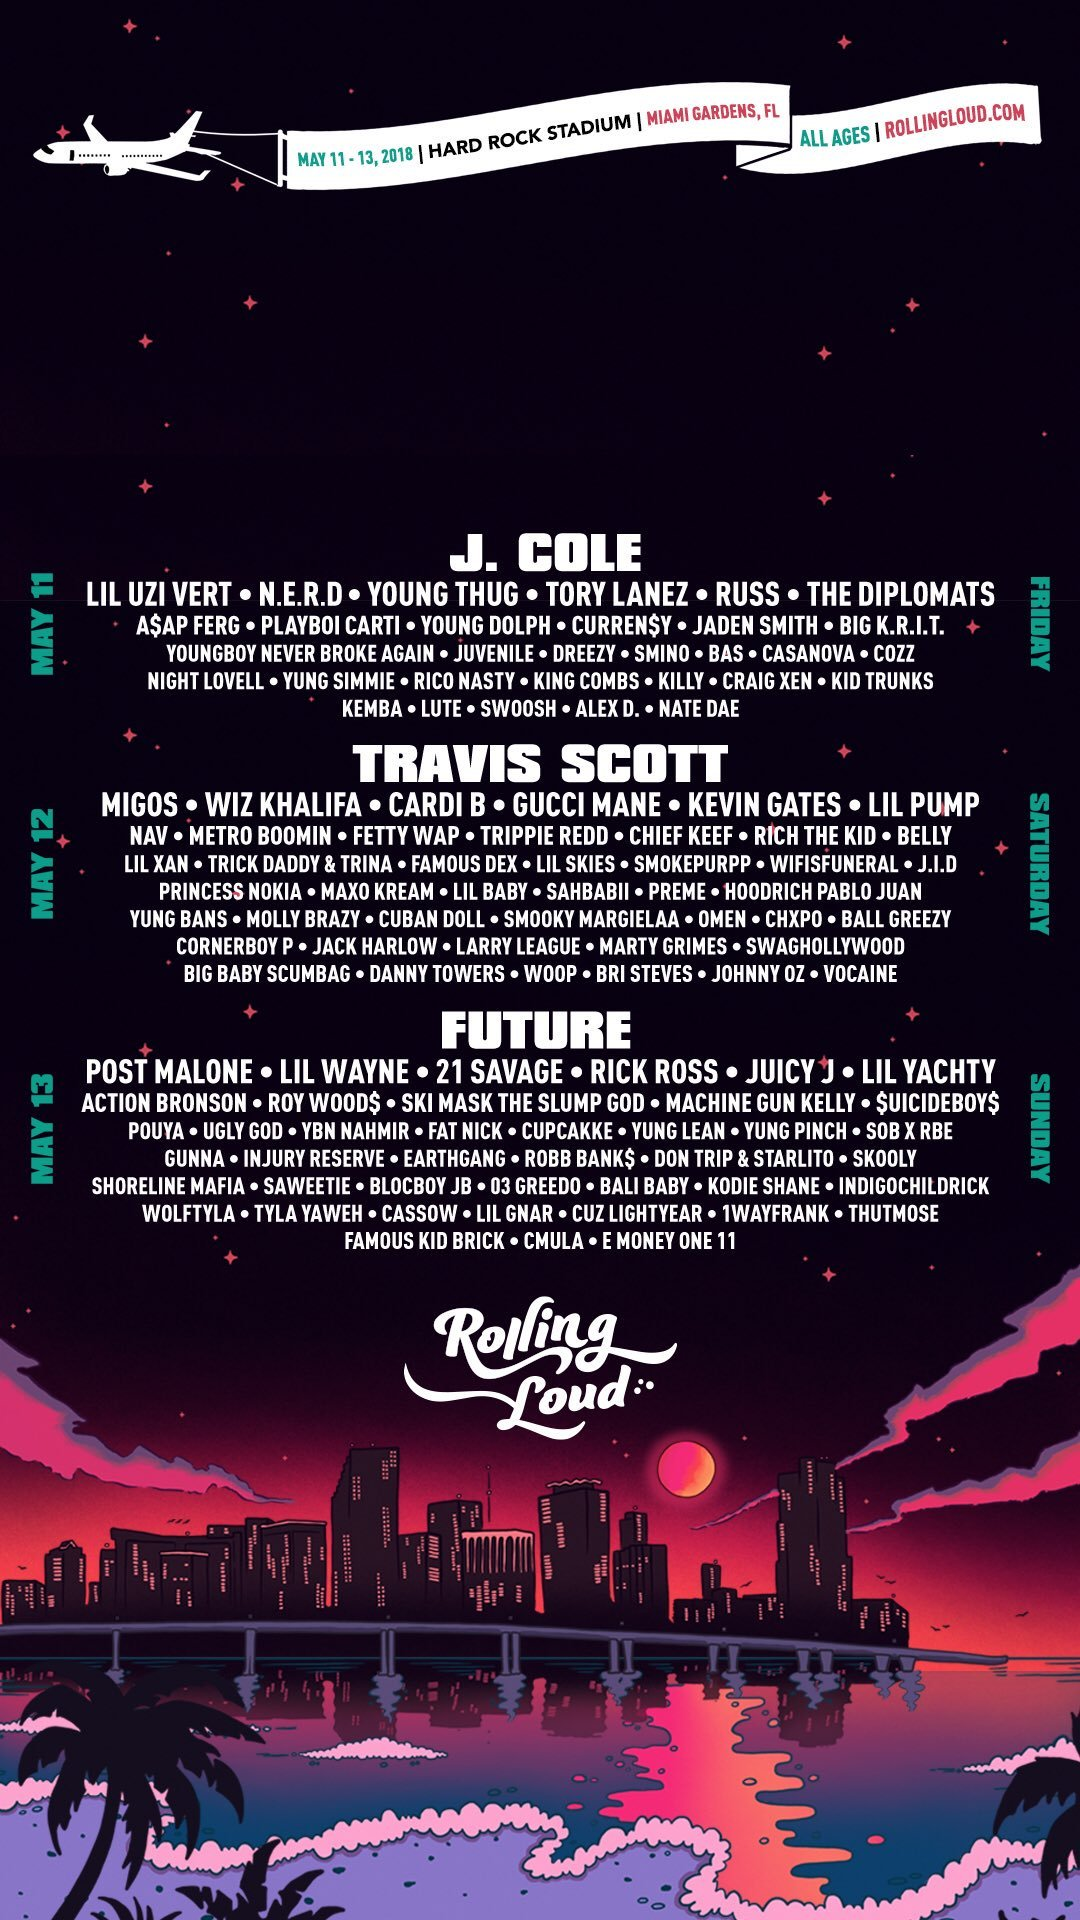 Rolling Loud on Twitter iPhone wallpaper rollingloud 1080x1920